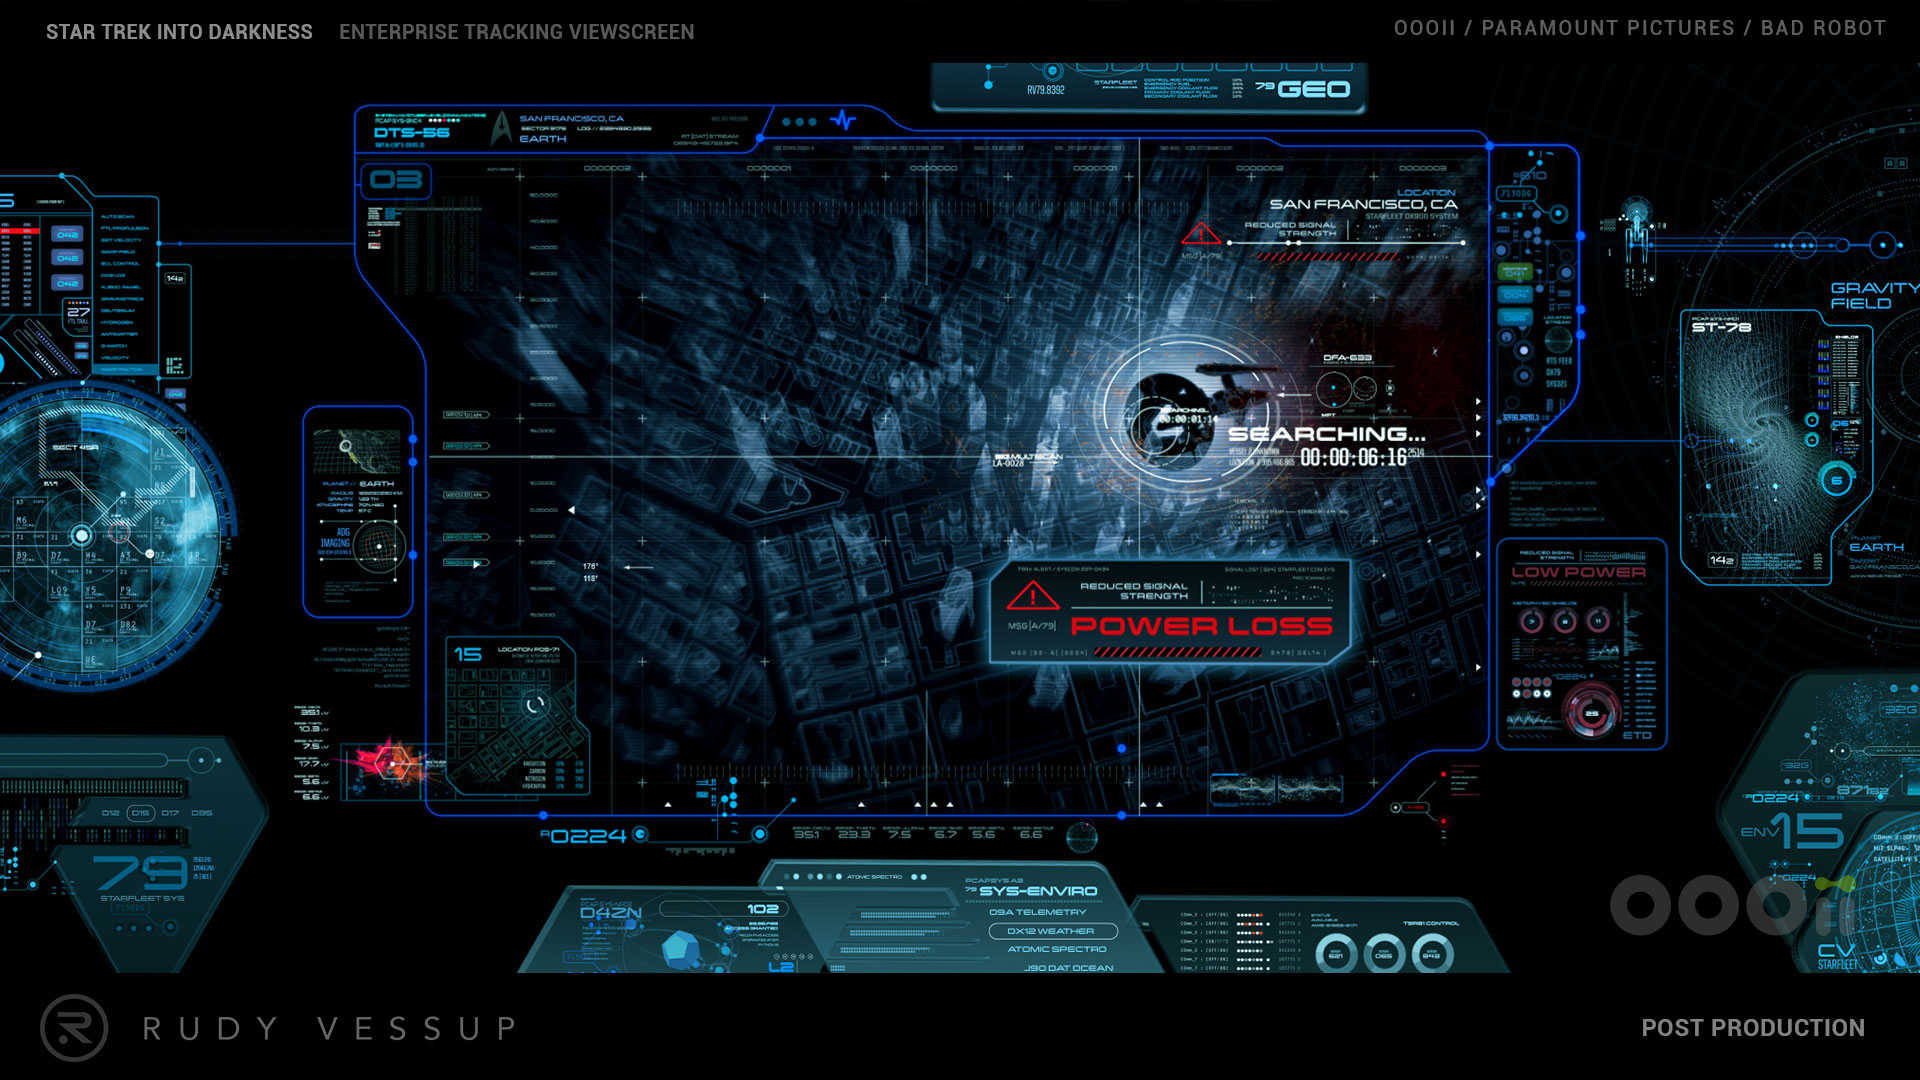 star_trek_viewscreen_interface_design_vessup.jpg